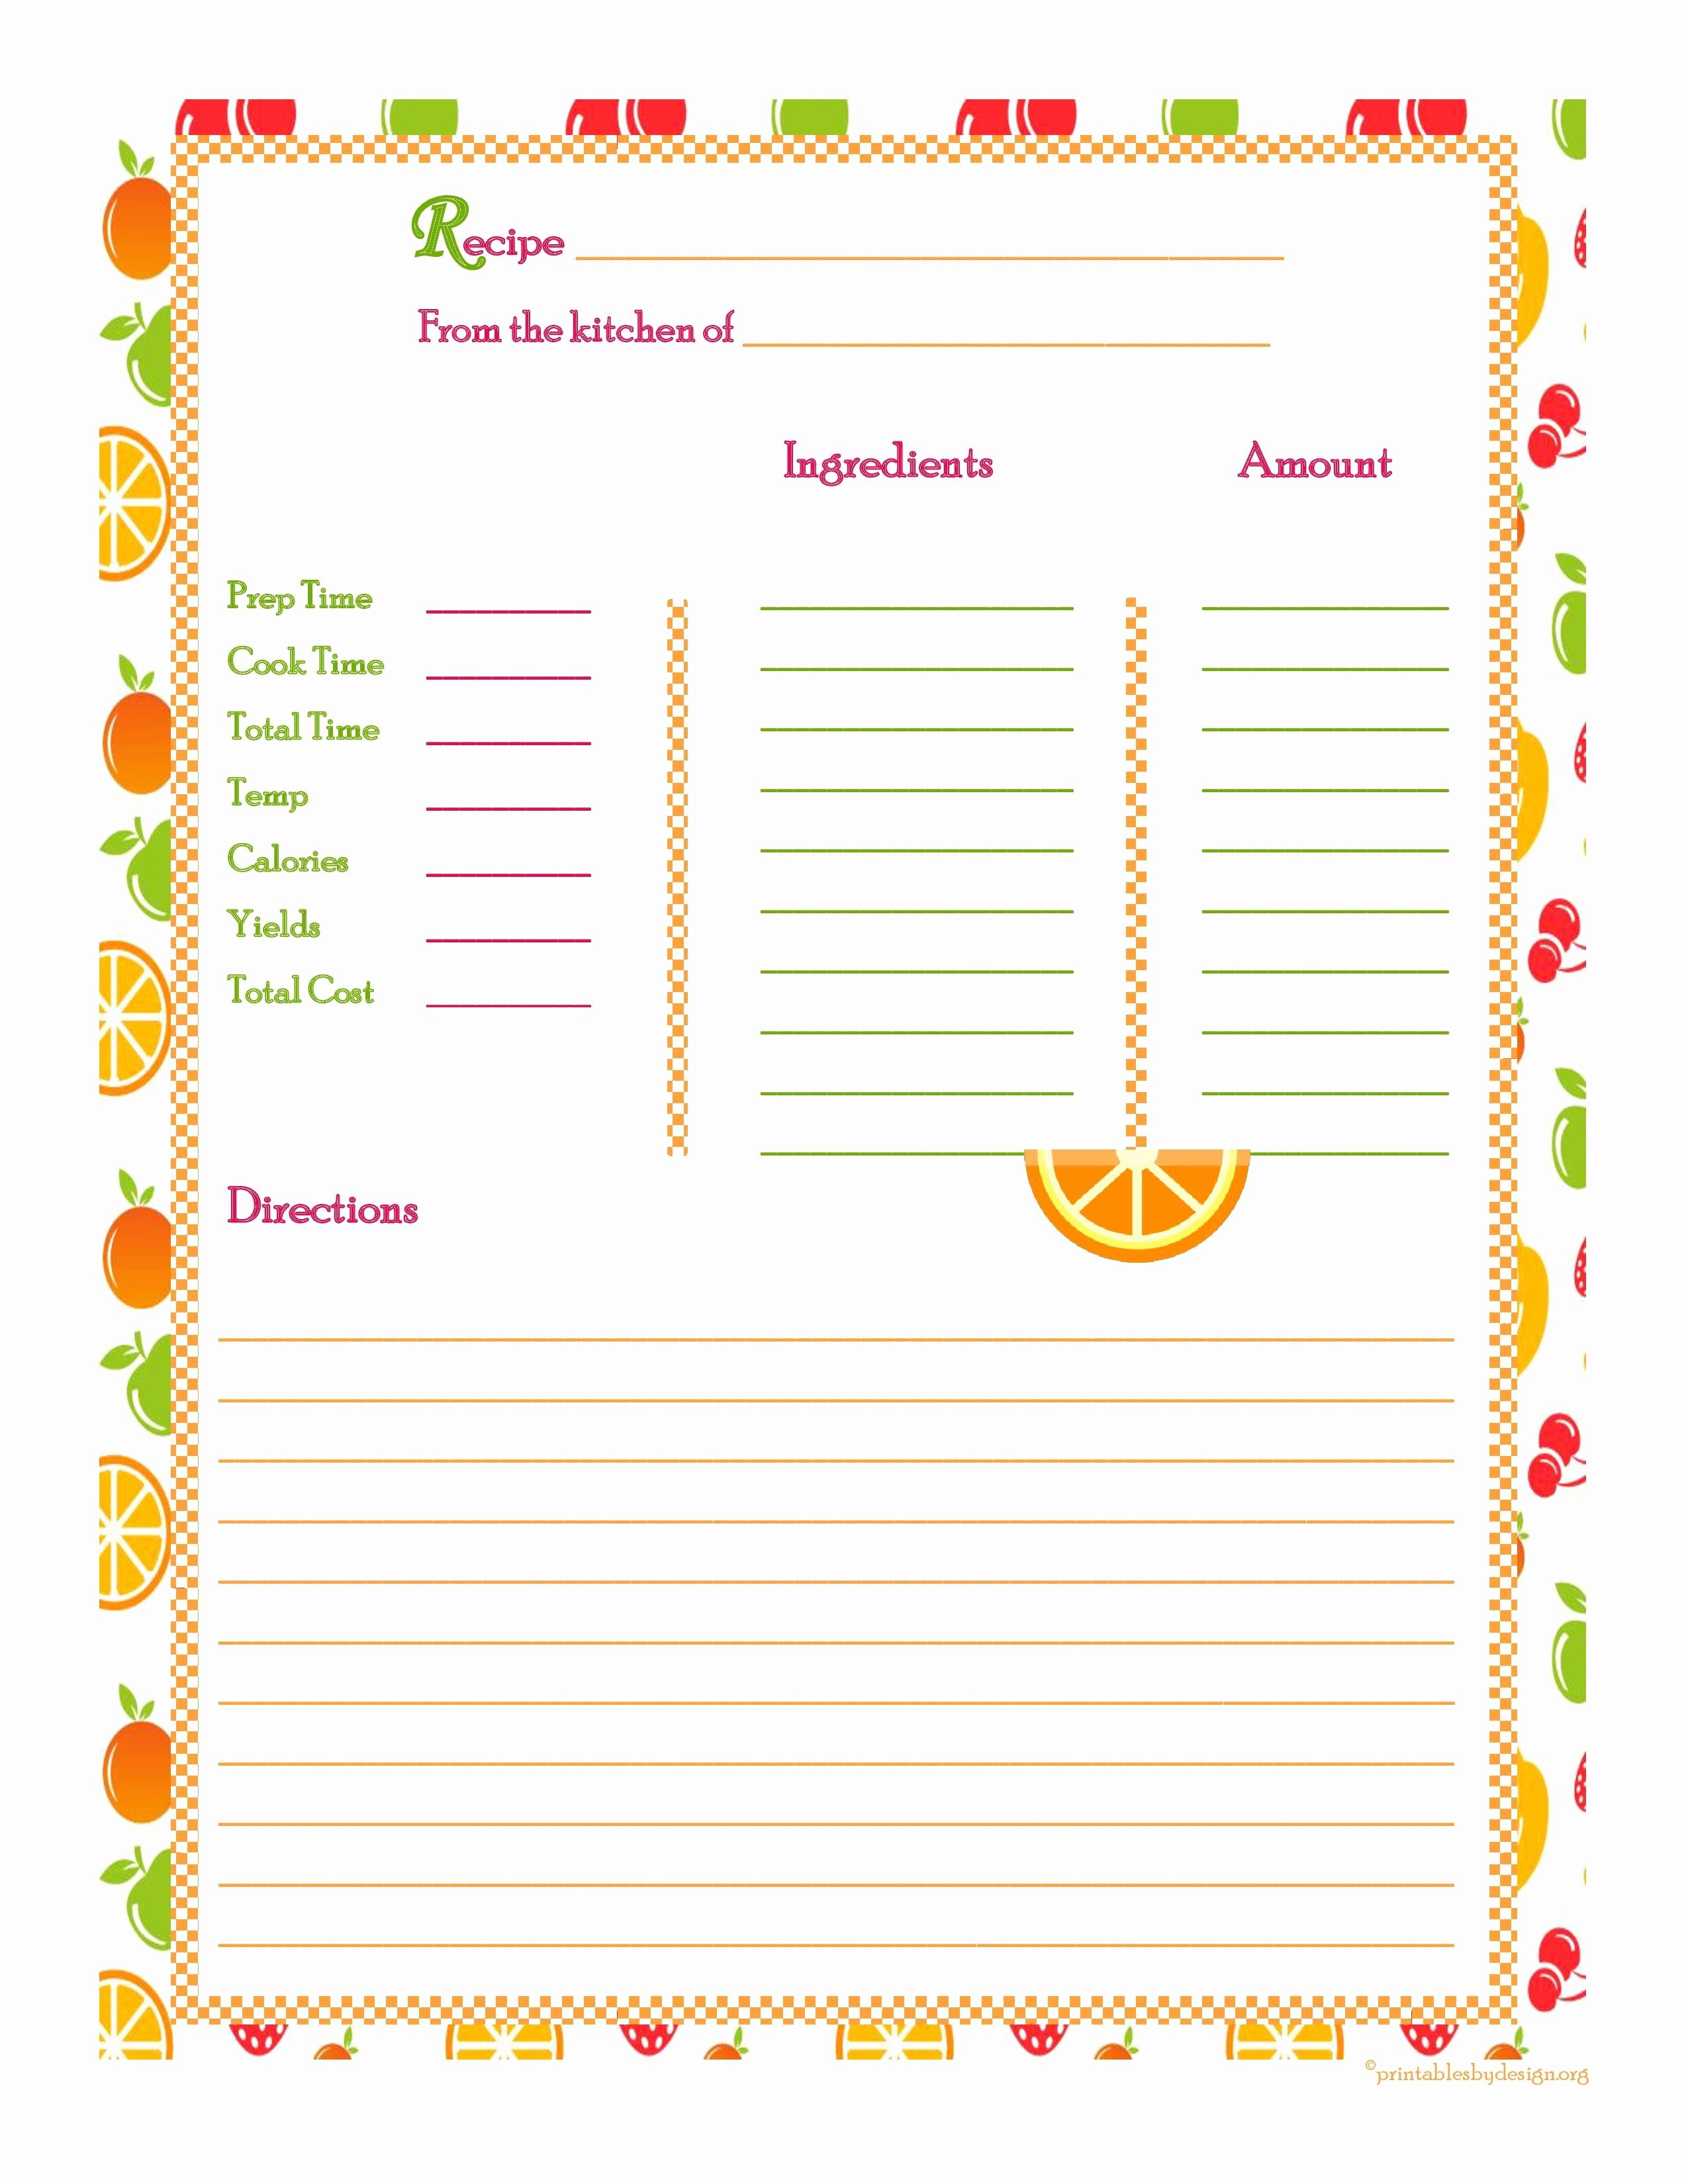 Recipe Cost Card Template Luxury orange Cherry Apple Background Recipe Card Full Page